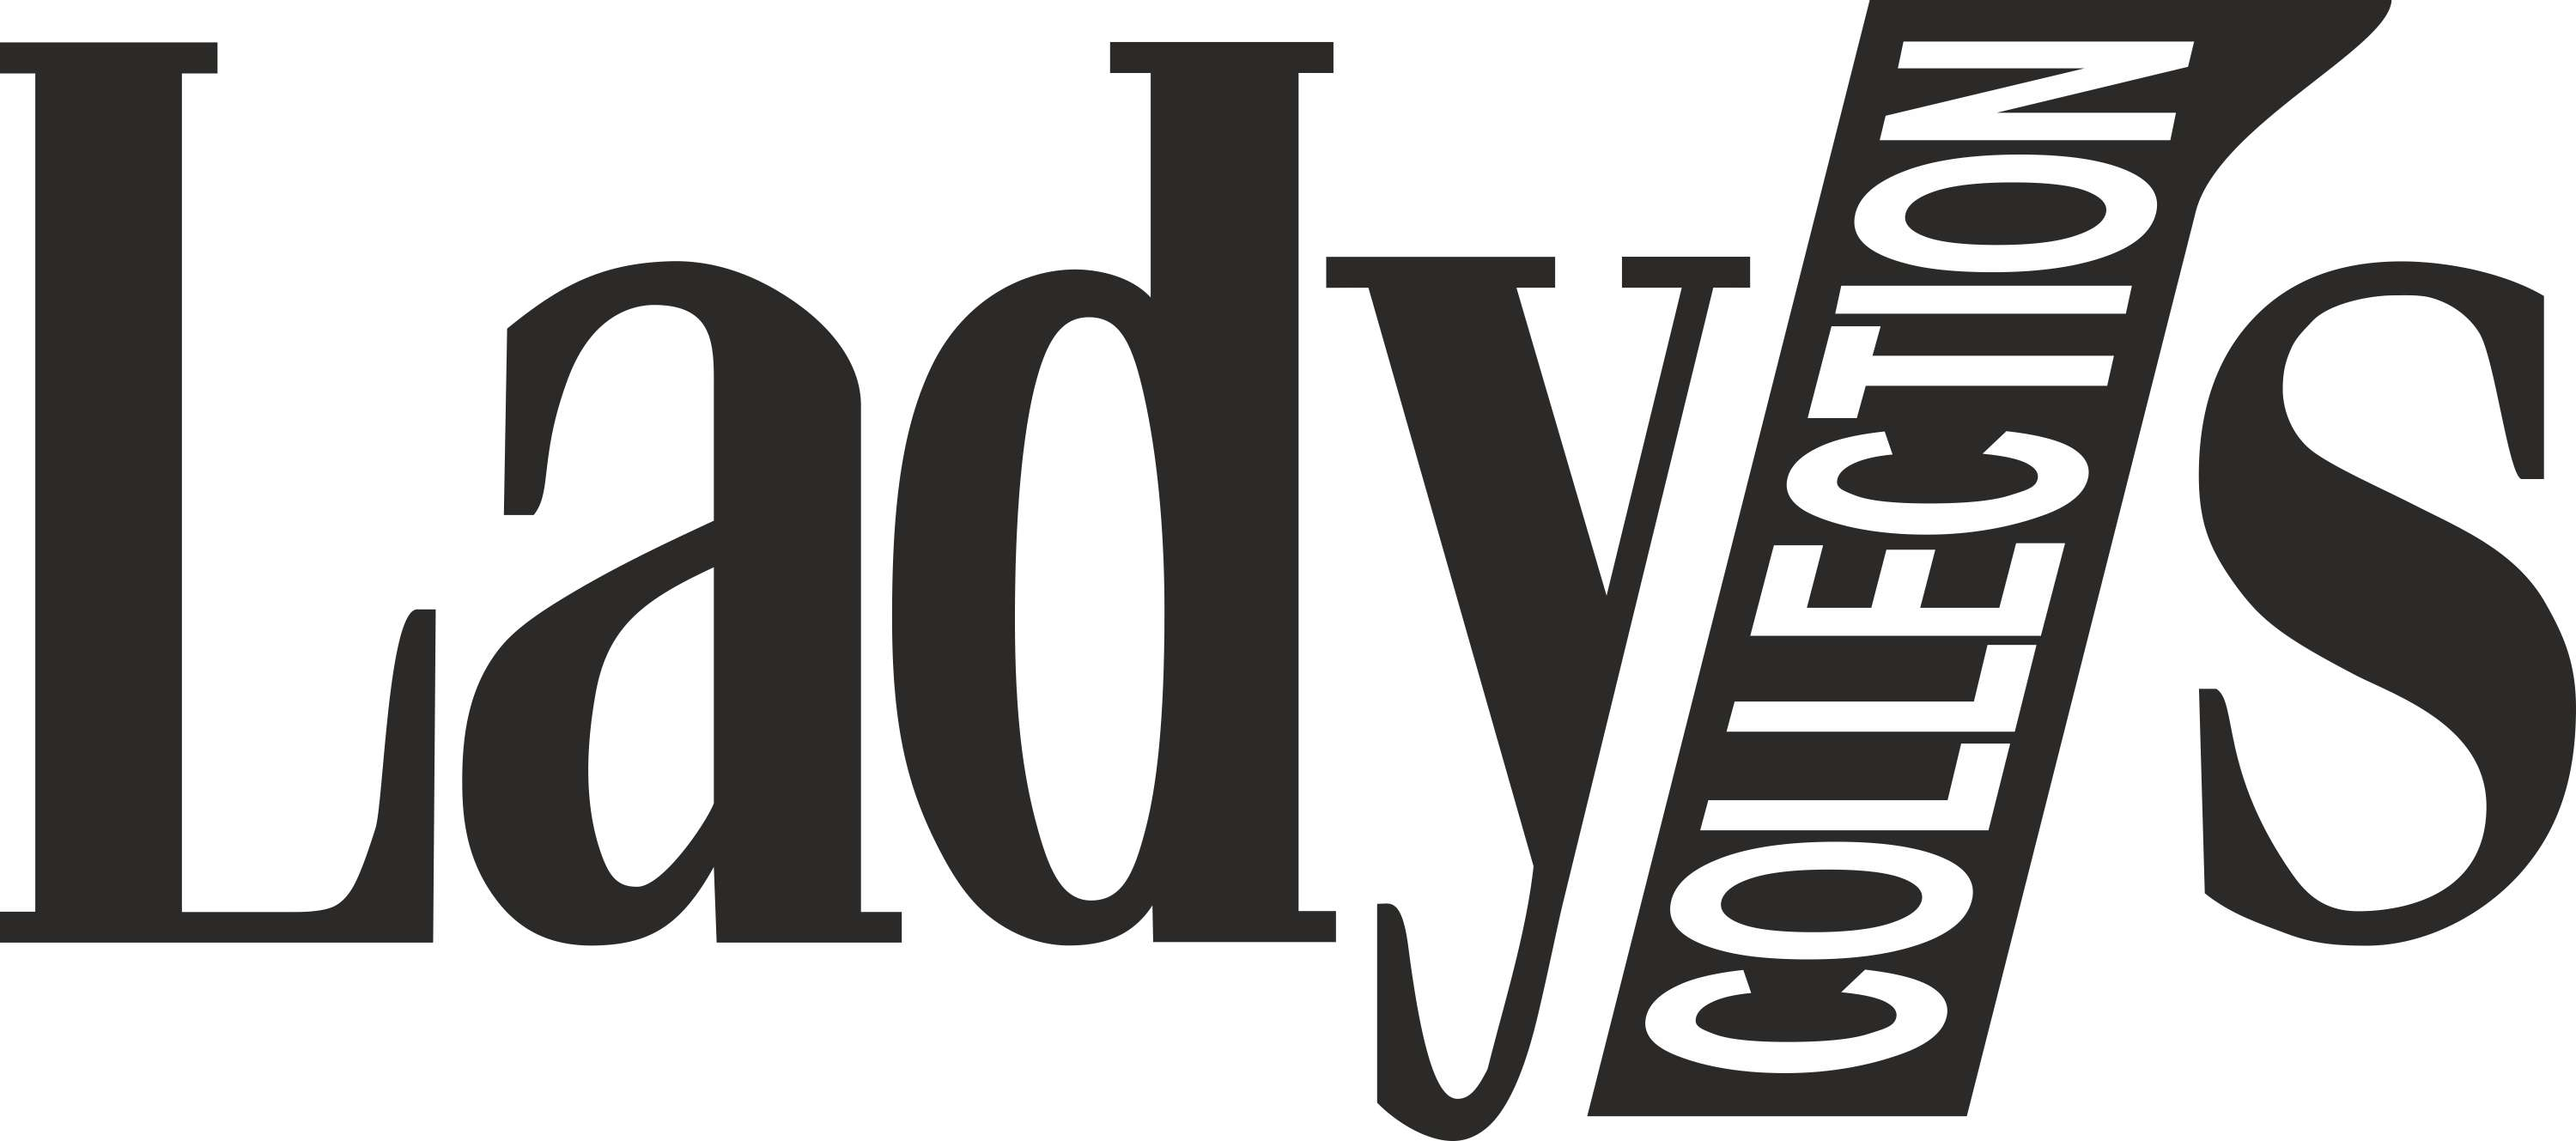 ladys_collection_logo